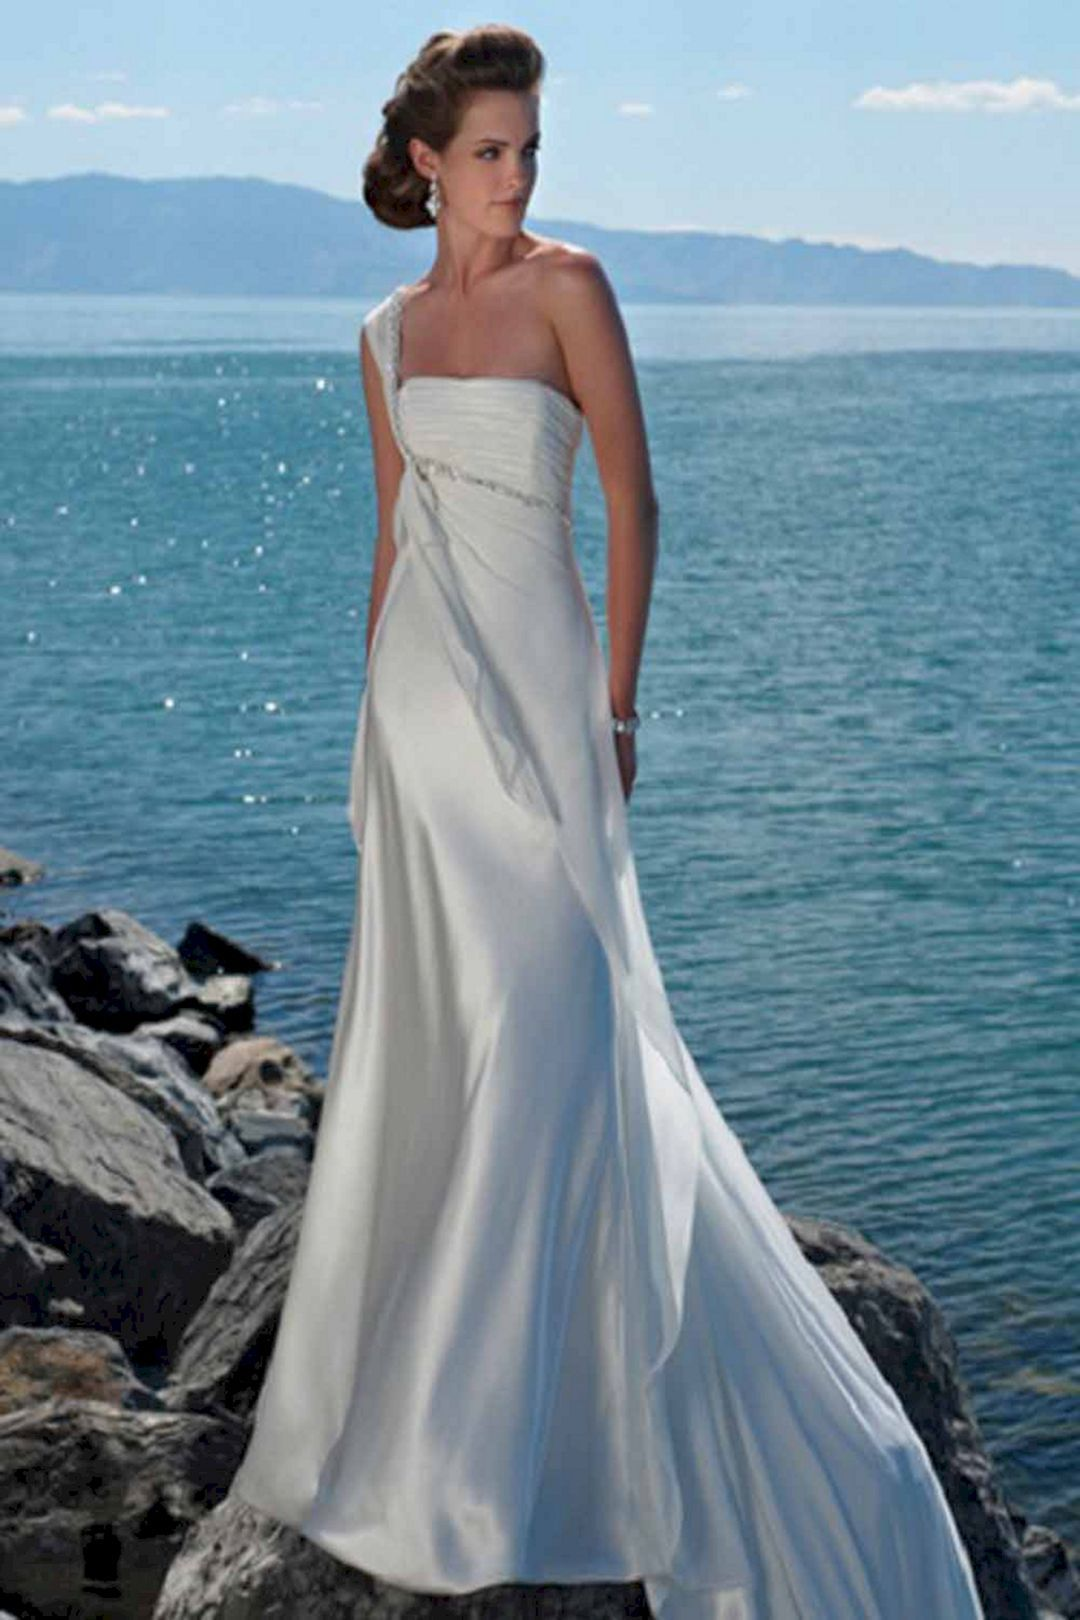 Wonderful summer beach wedding dresses for bride looks more